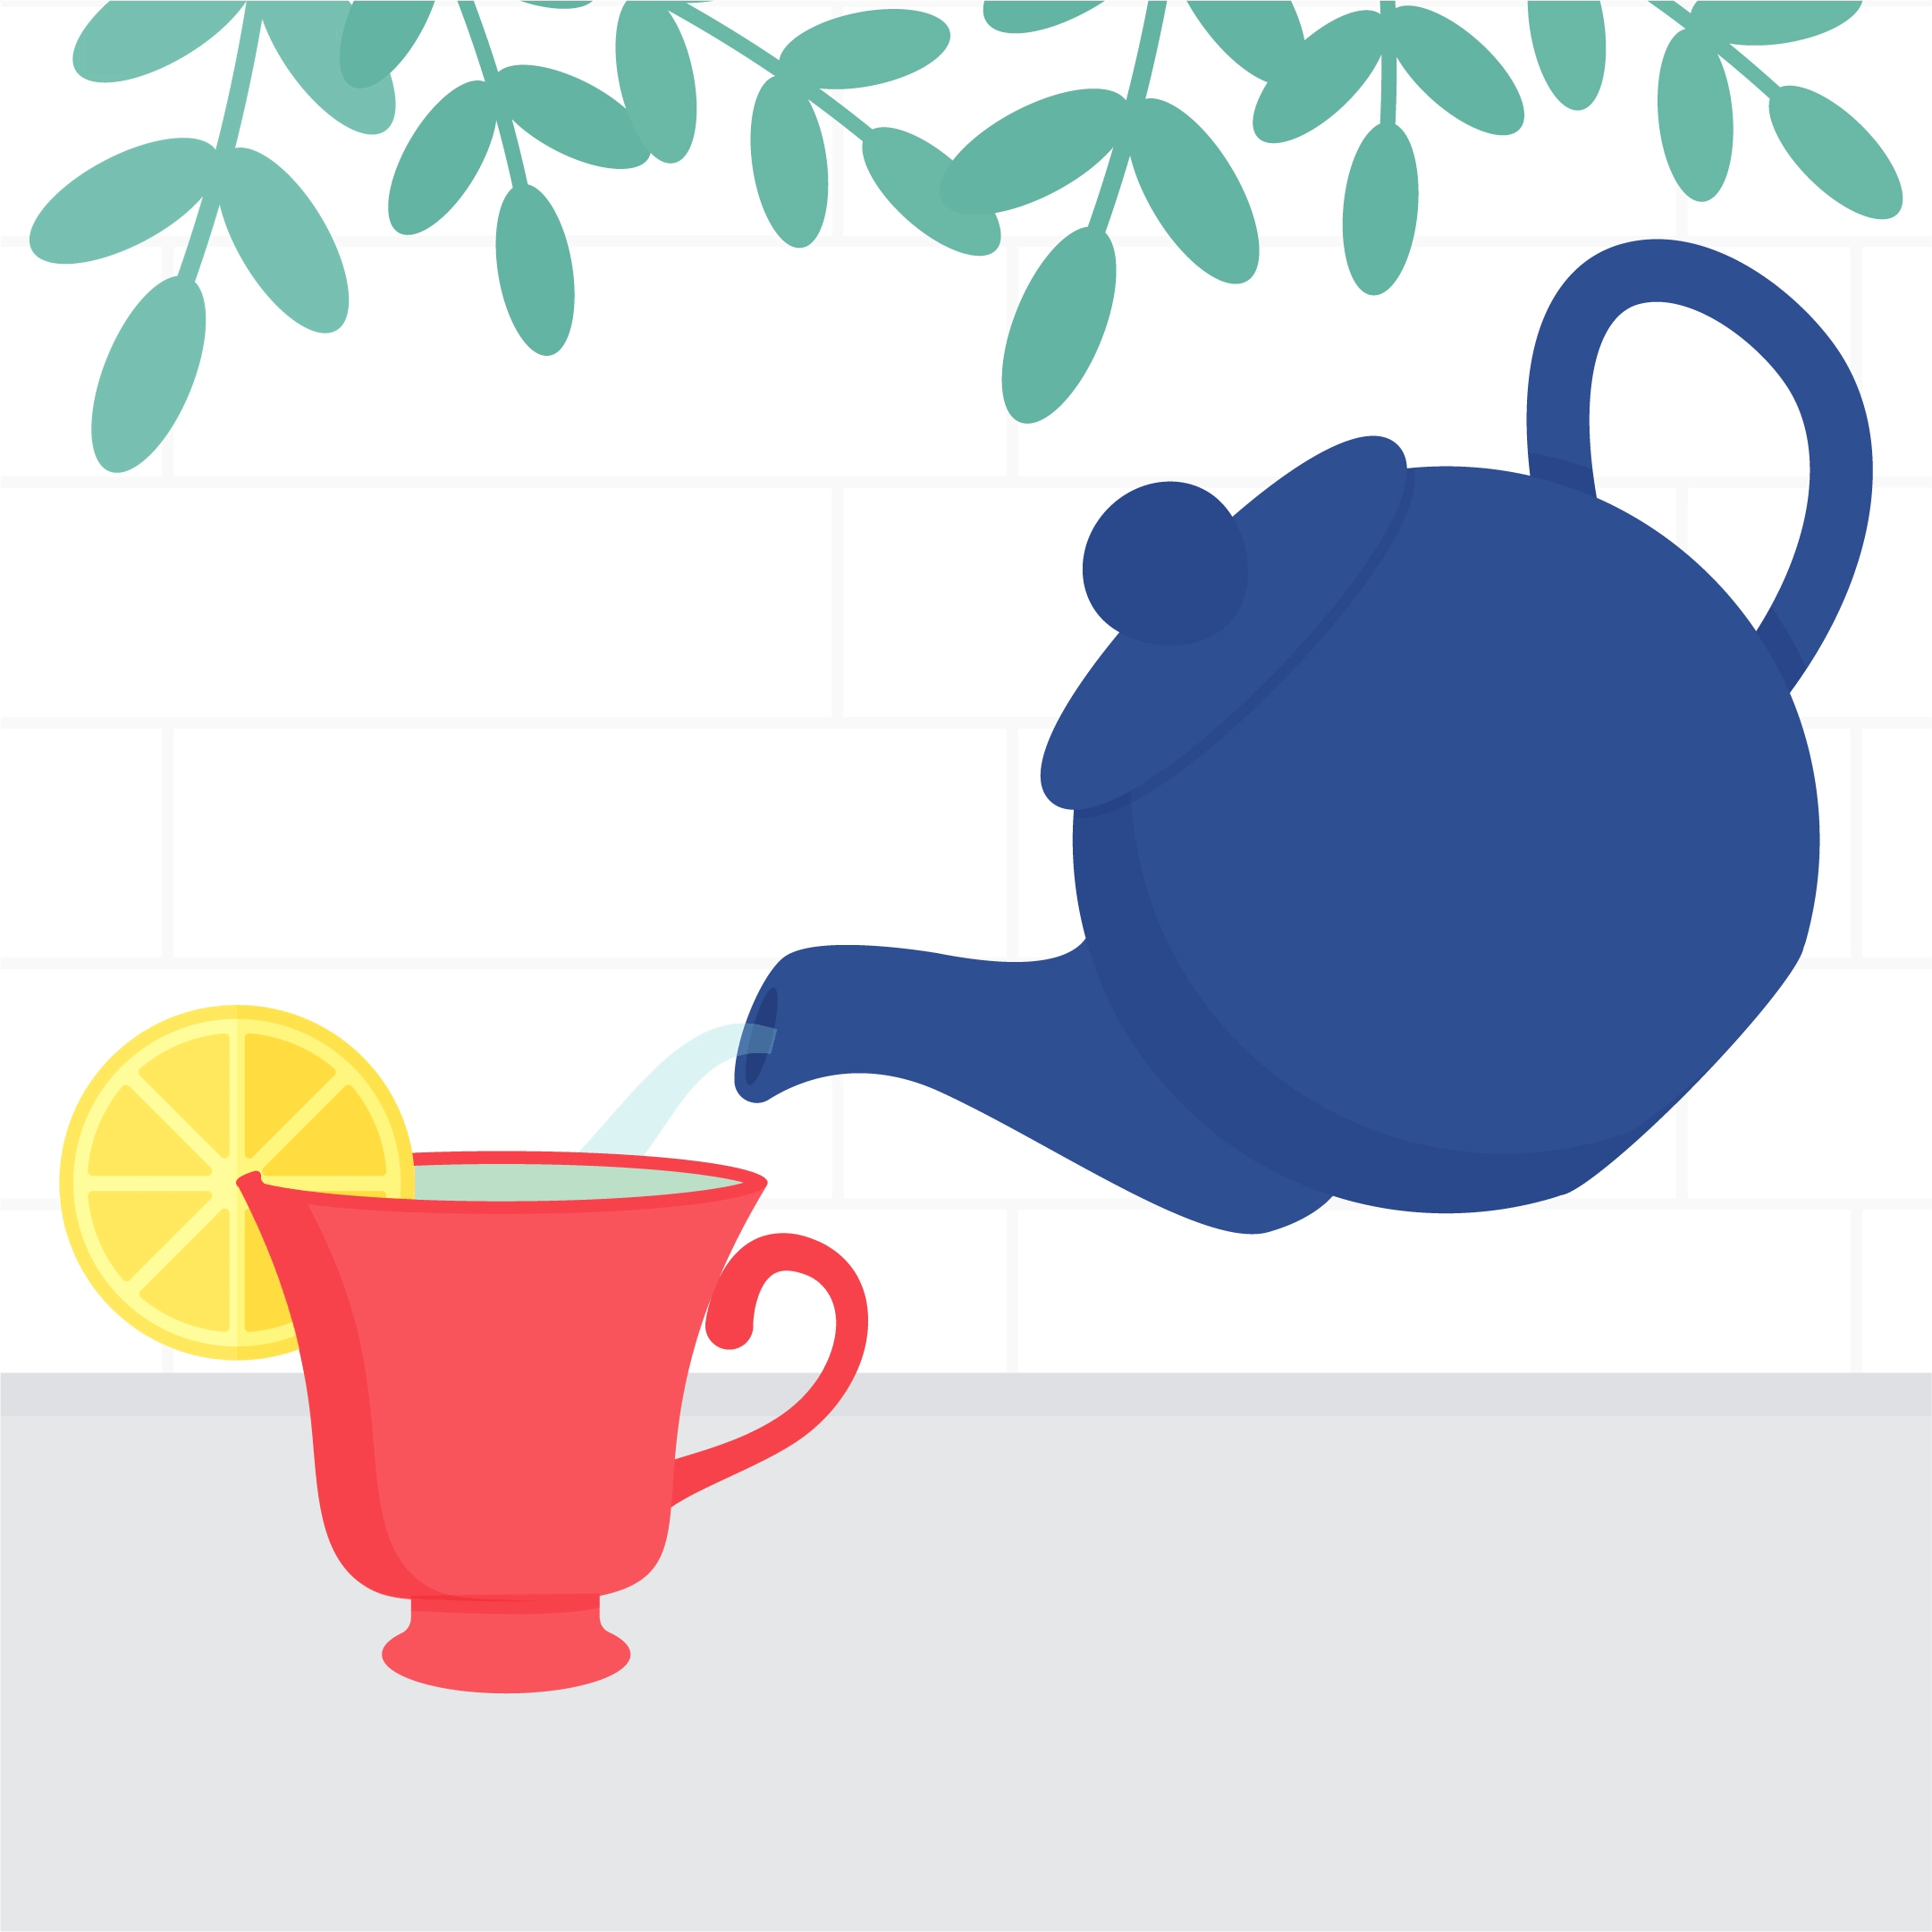 Vector illustration of a tea brewing in a kitchen - adding boiling water from the teapot into a teacup in flat design style